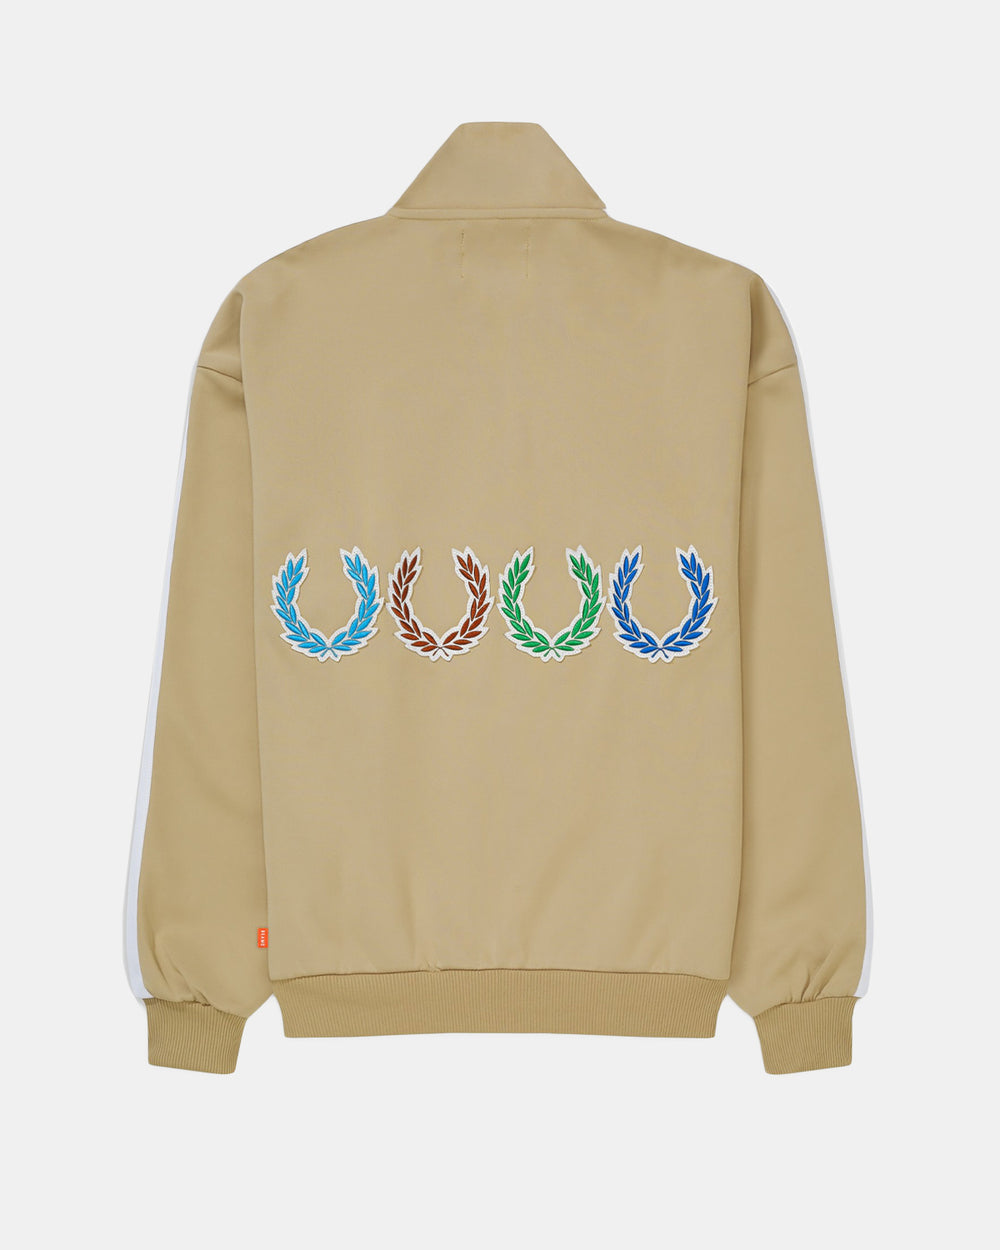 Fred Perry - Fred Perry x BEAMS Laurel Wreath Patch Track Jacket (Beige)